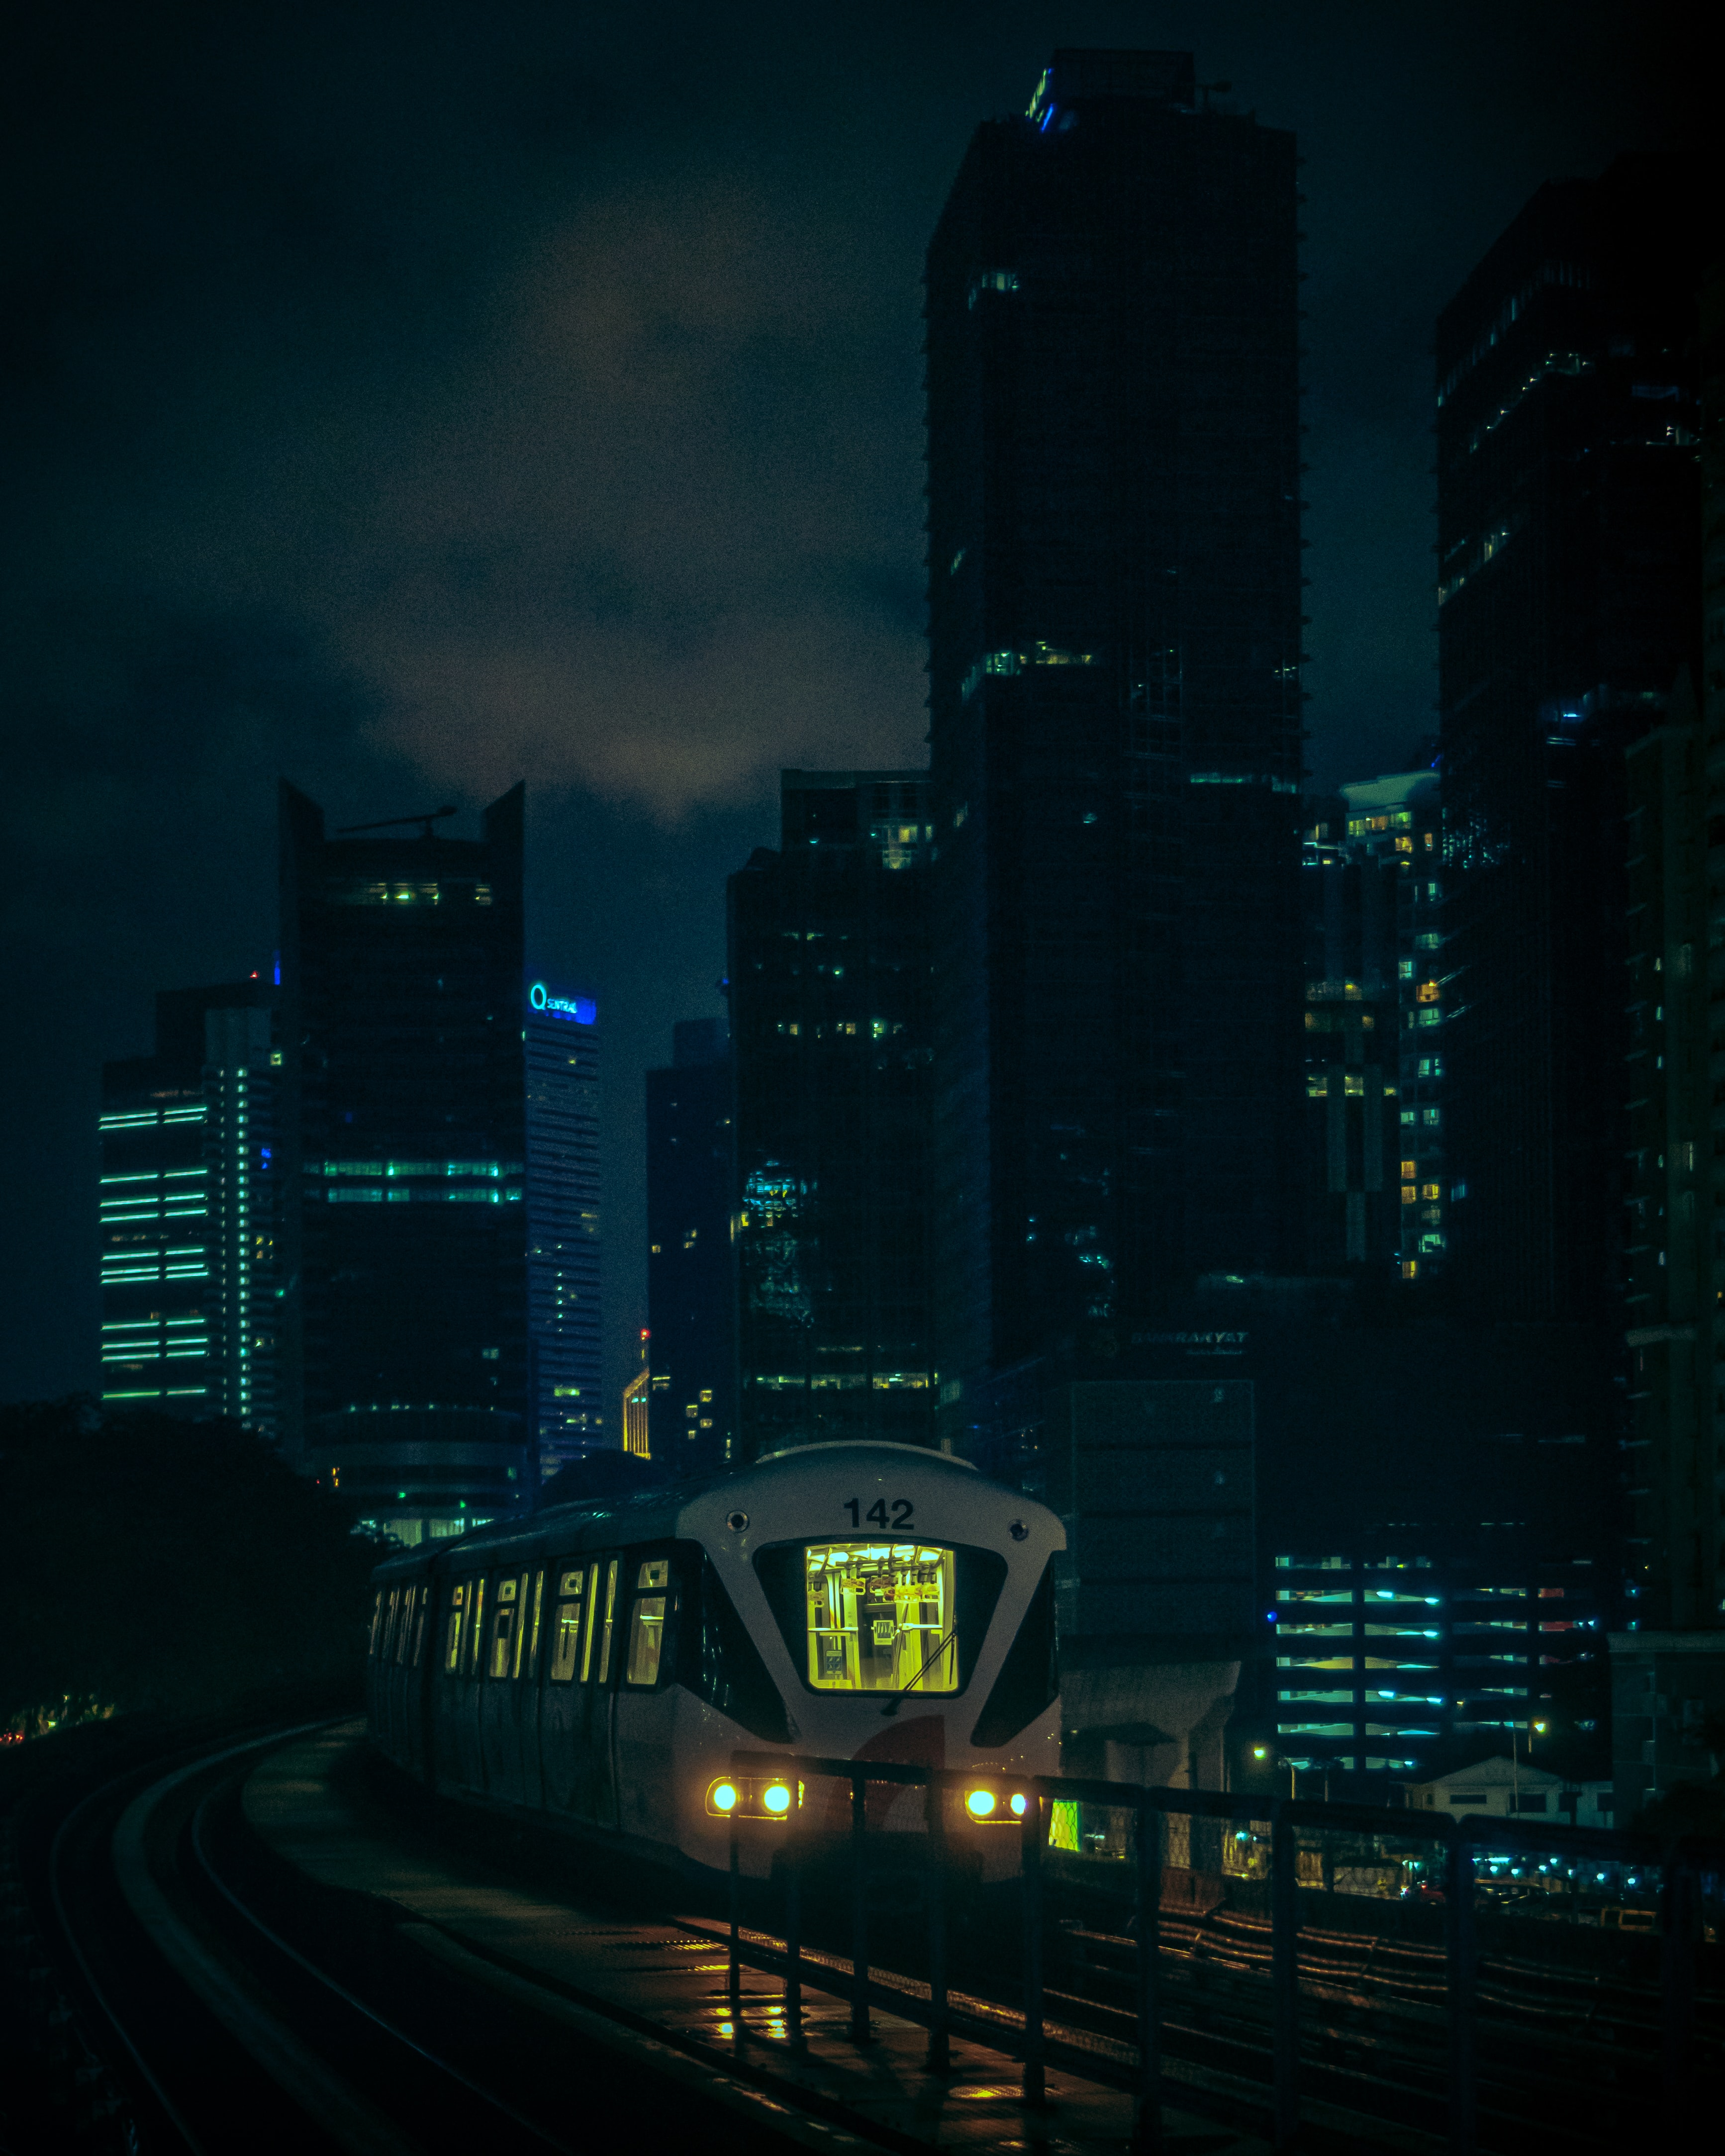 114872 Screensavers and Wallpapers Train for phone. Download Night, City, Building, Dark, Train pictures for free